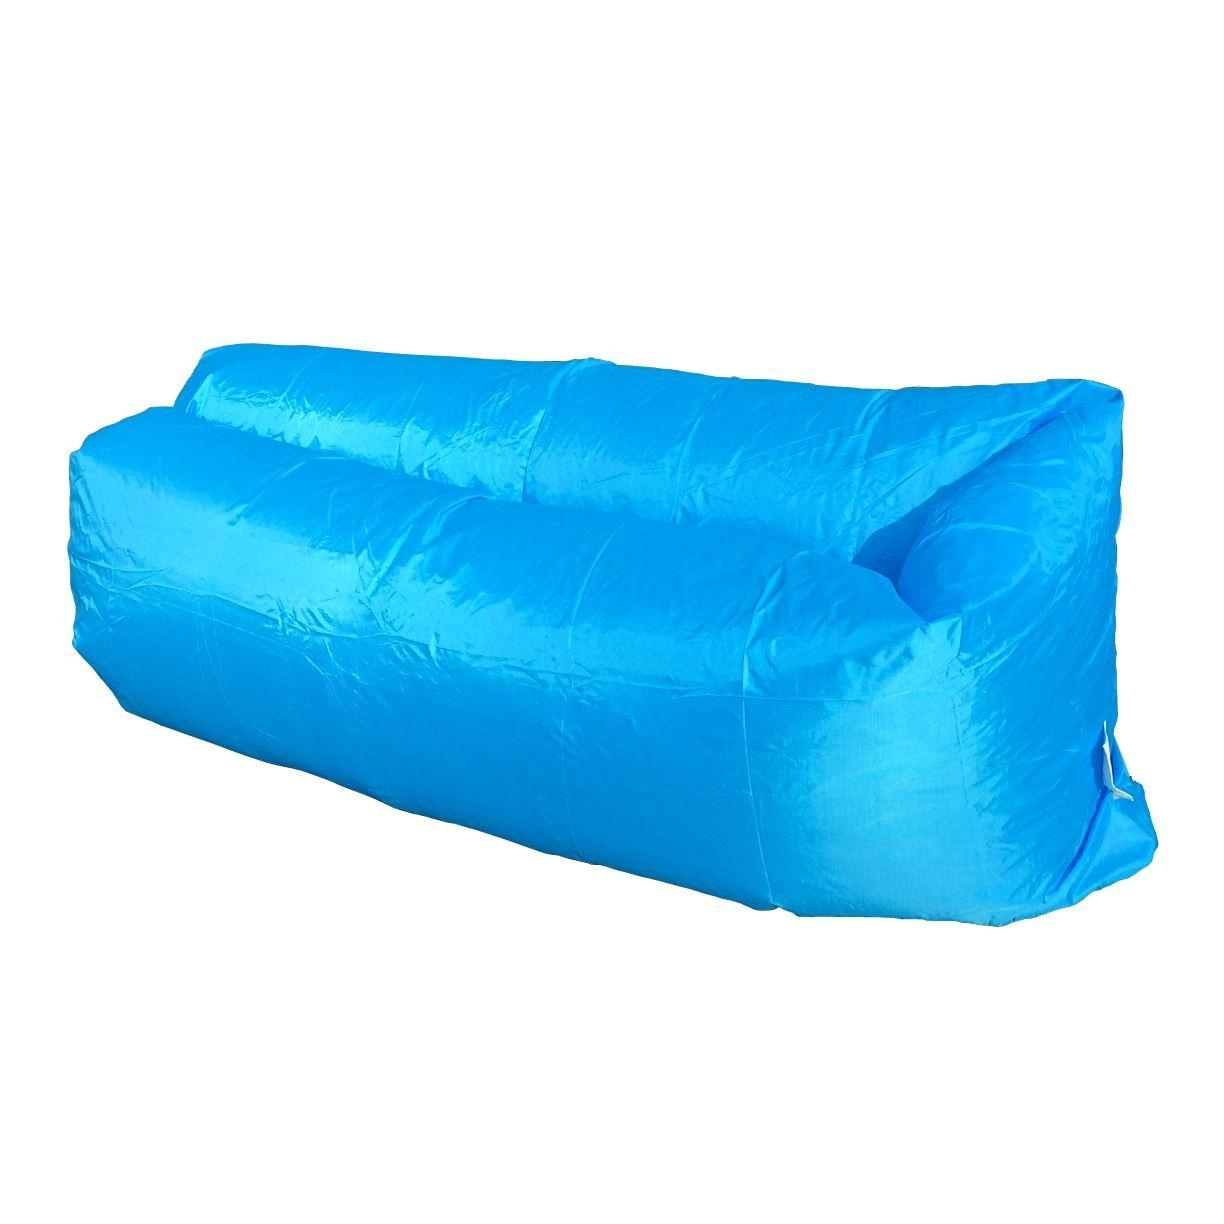 Inflatable Sofa Chair Air Bed Luxury Seat Camping Festival Holiday Throughout Inflatable Sofas And Chairs (Image 12 of 20)